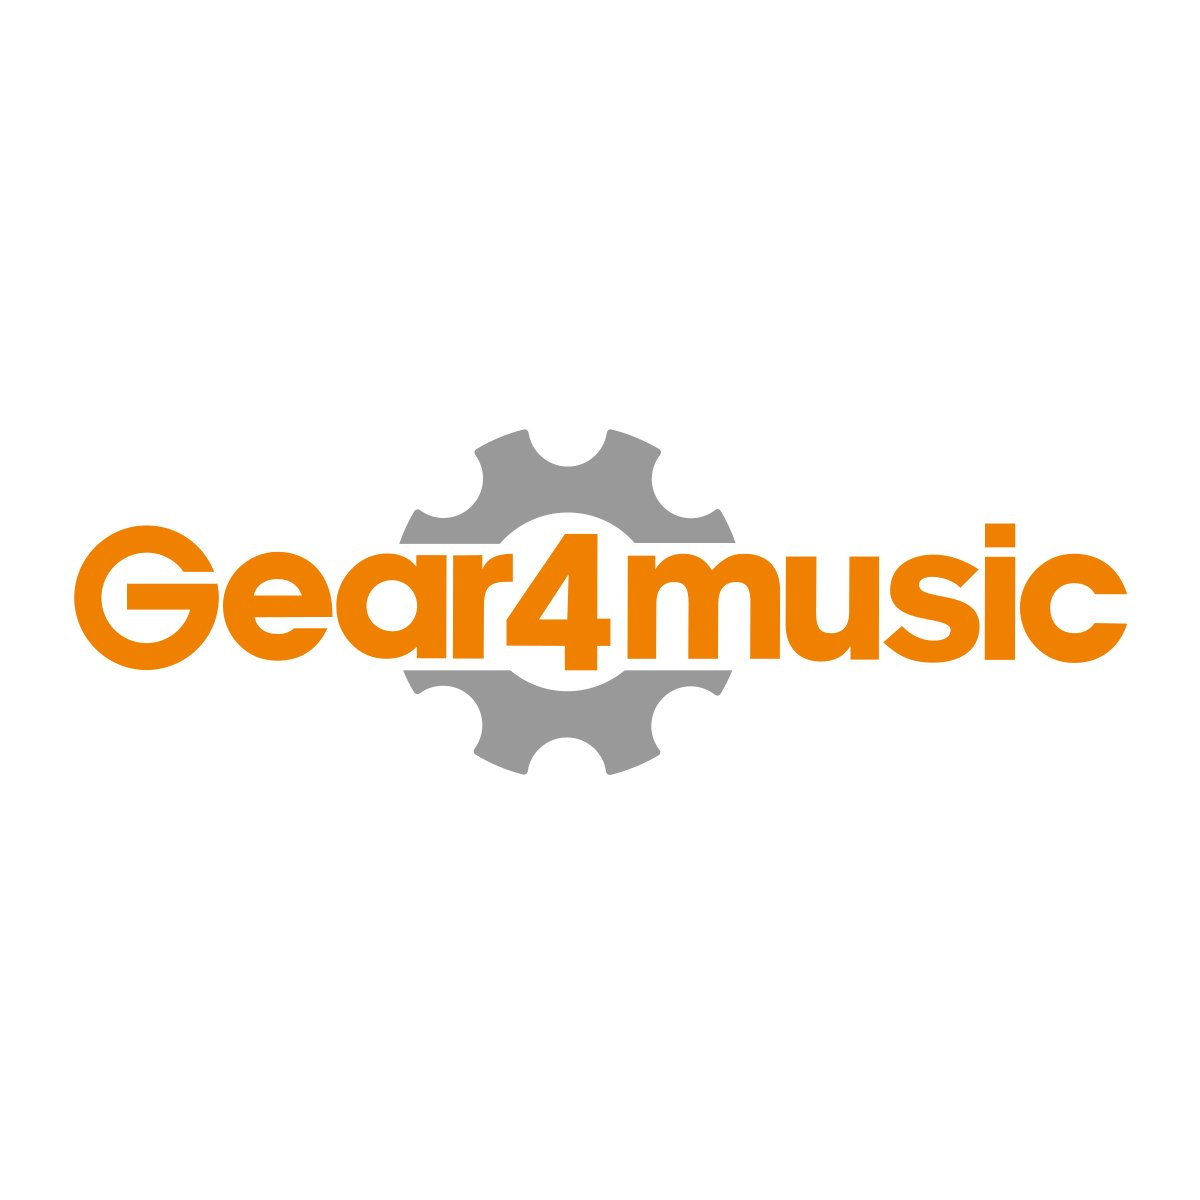 Munspel av Gear4music